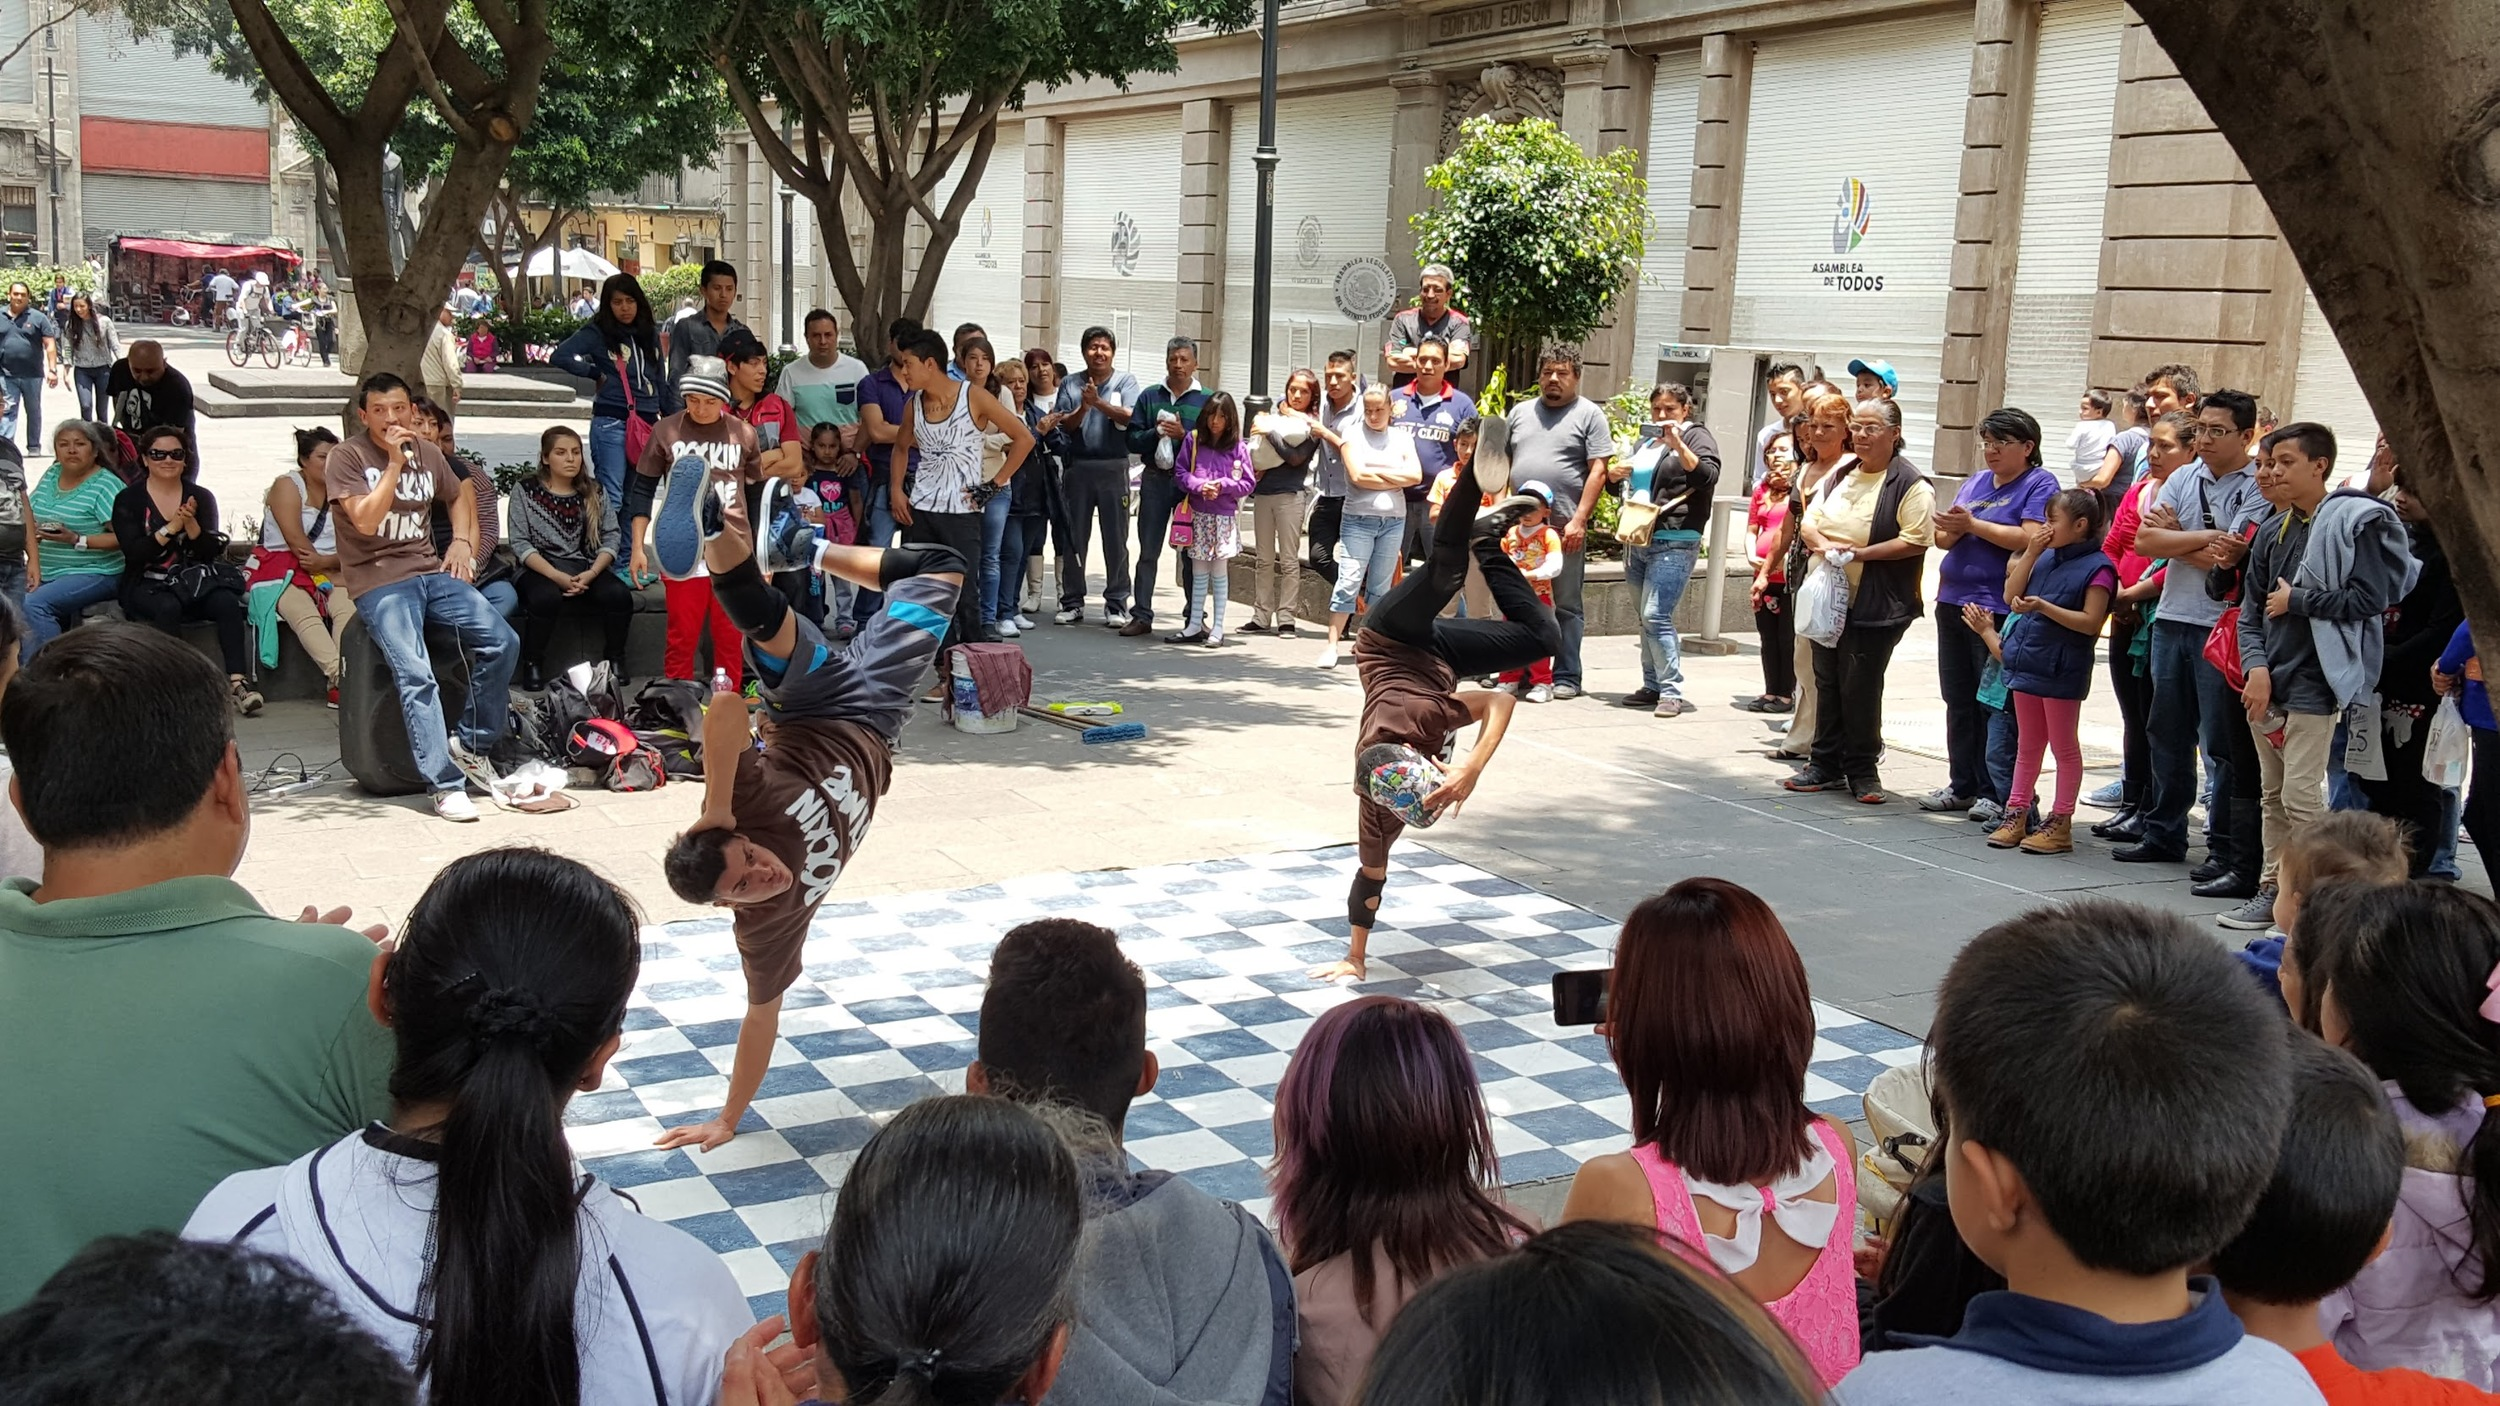 Dancers in Mexico City.